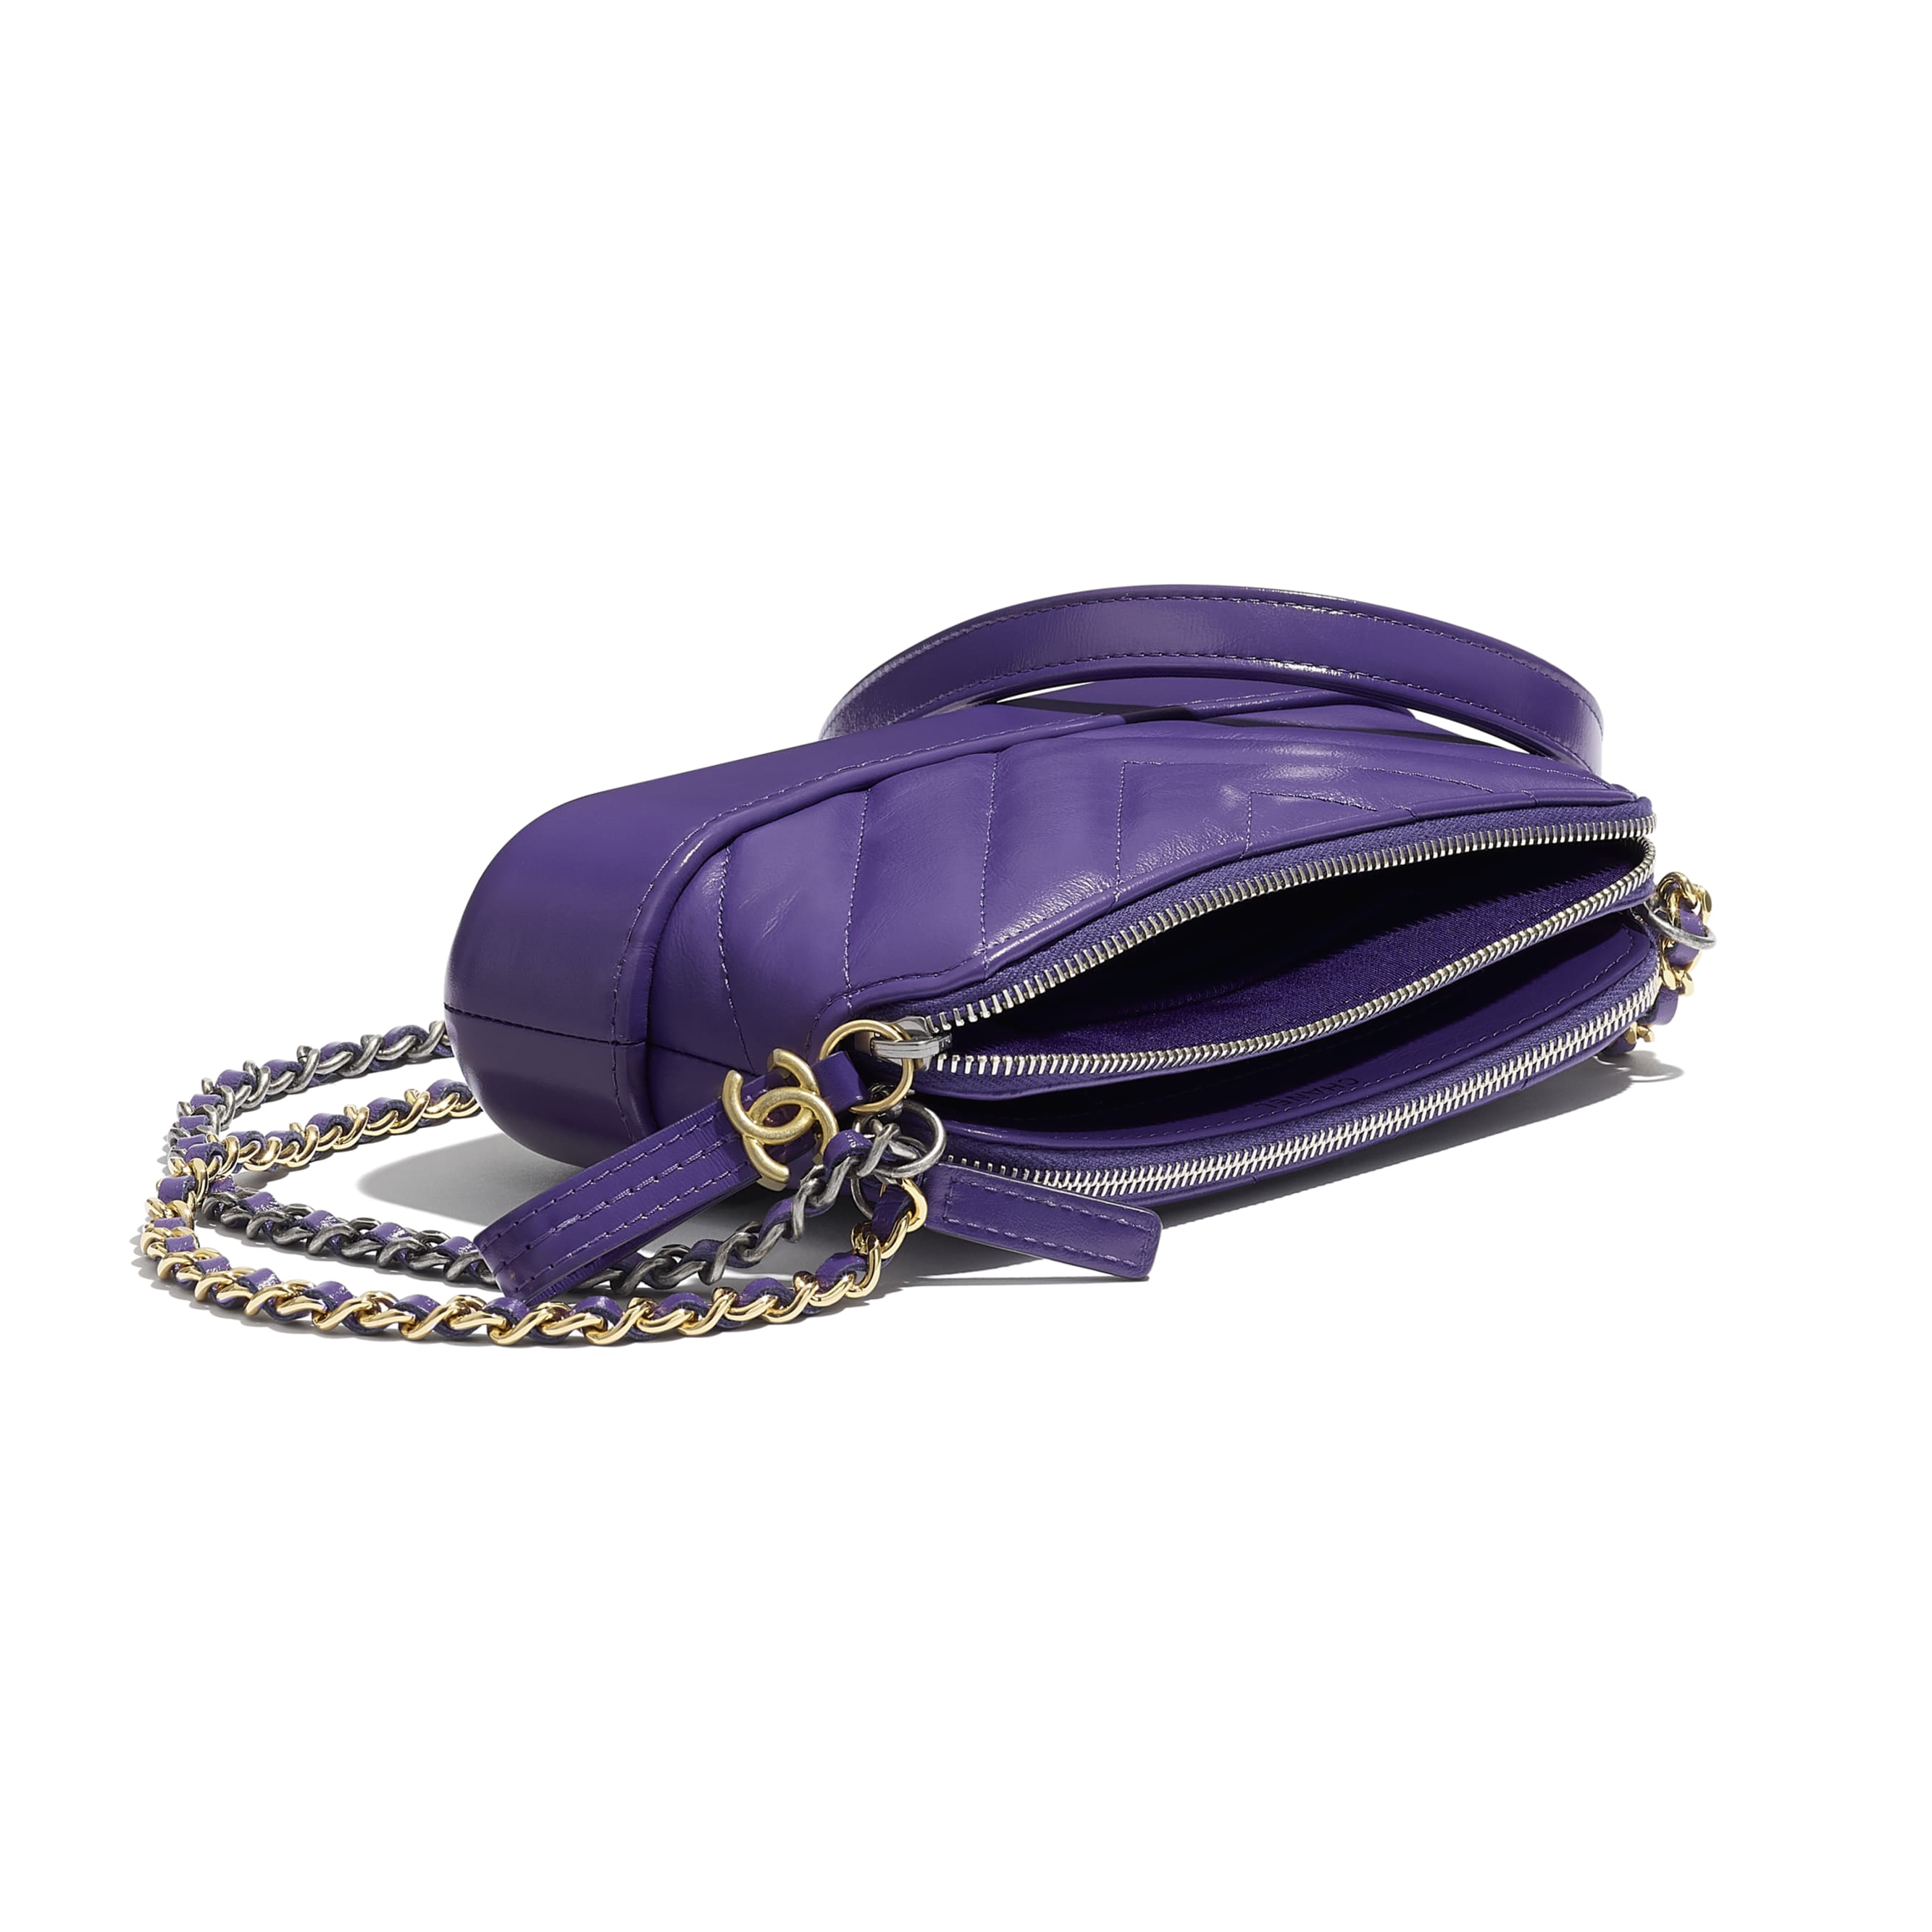 Clutch With Chain - Purple - Aged Calfskin, Smooth Calfskin, Gold-Tone, Silver-Tone & Ruthenium-Finish Metal - CHANEL - Extra view - see standard sized version